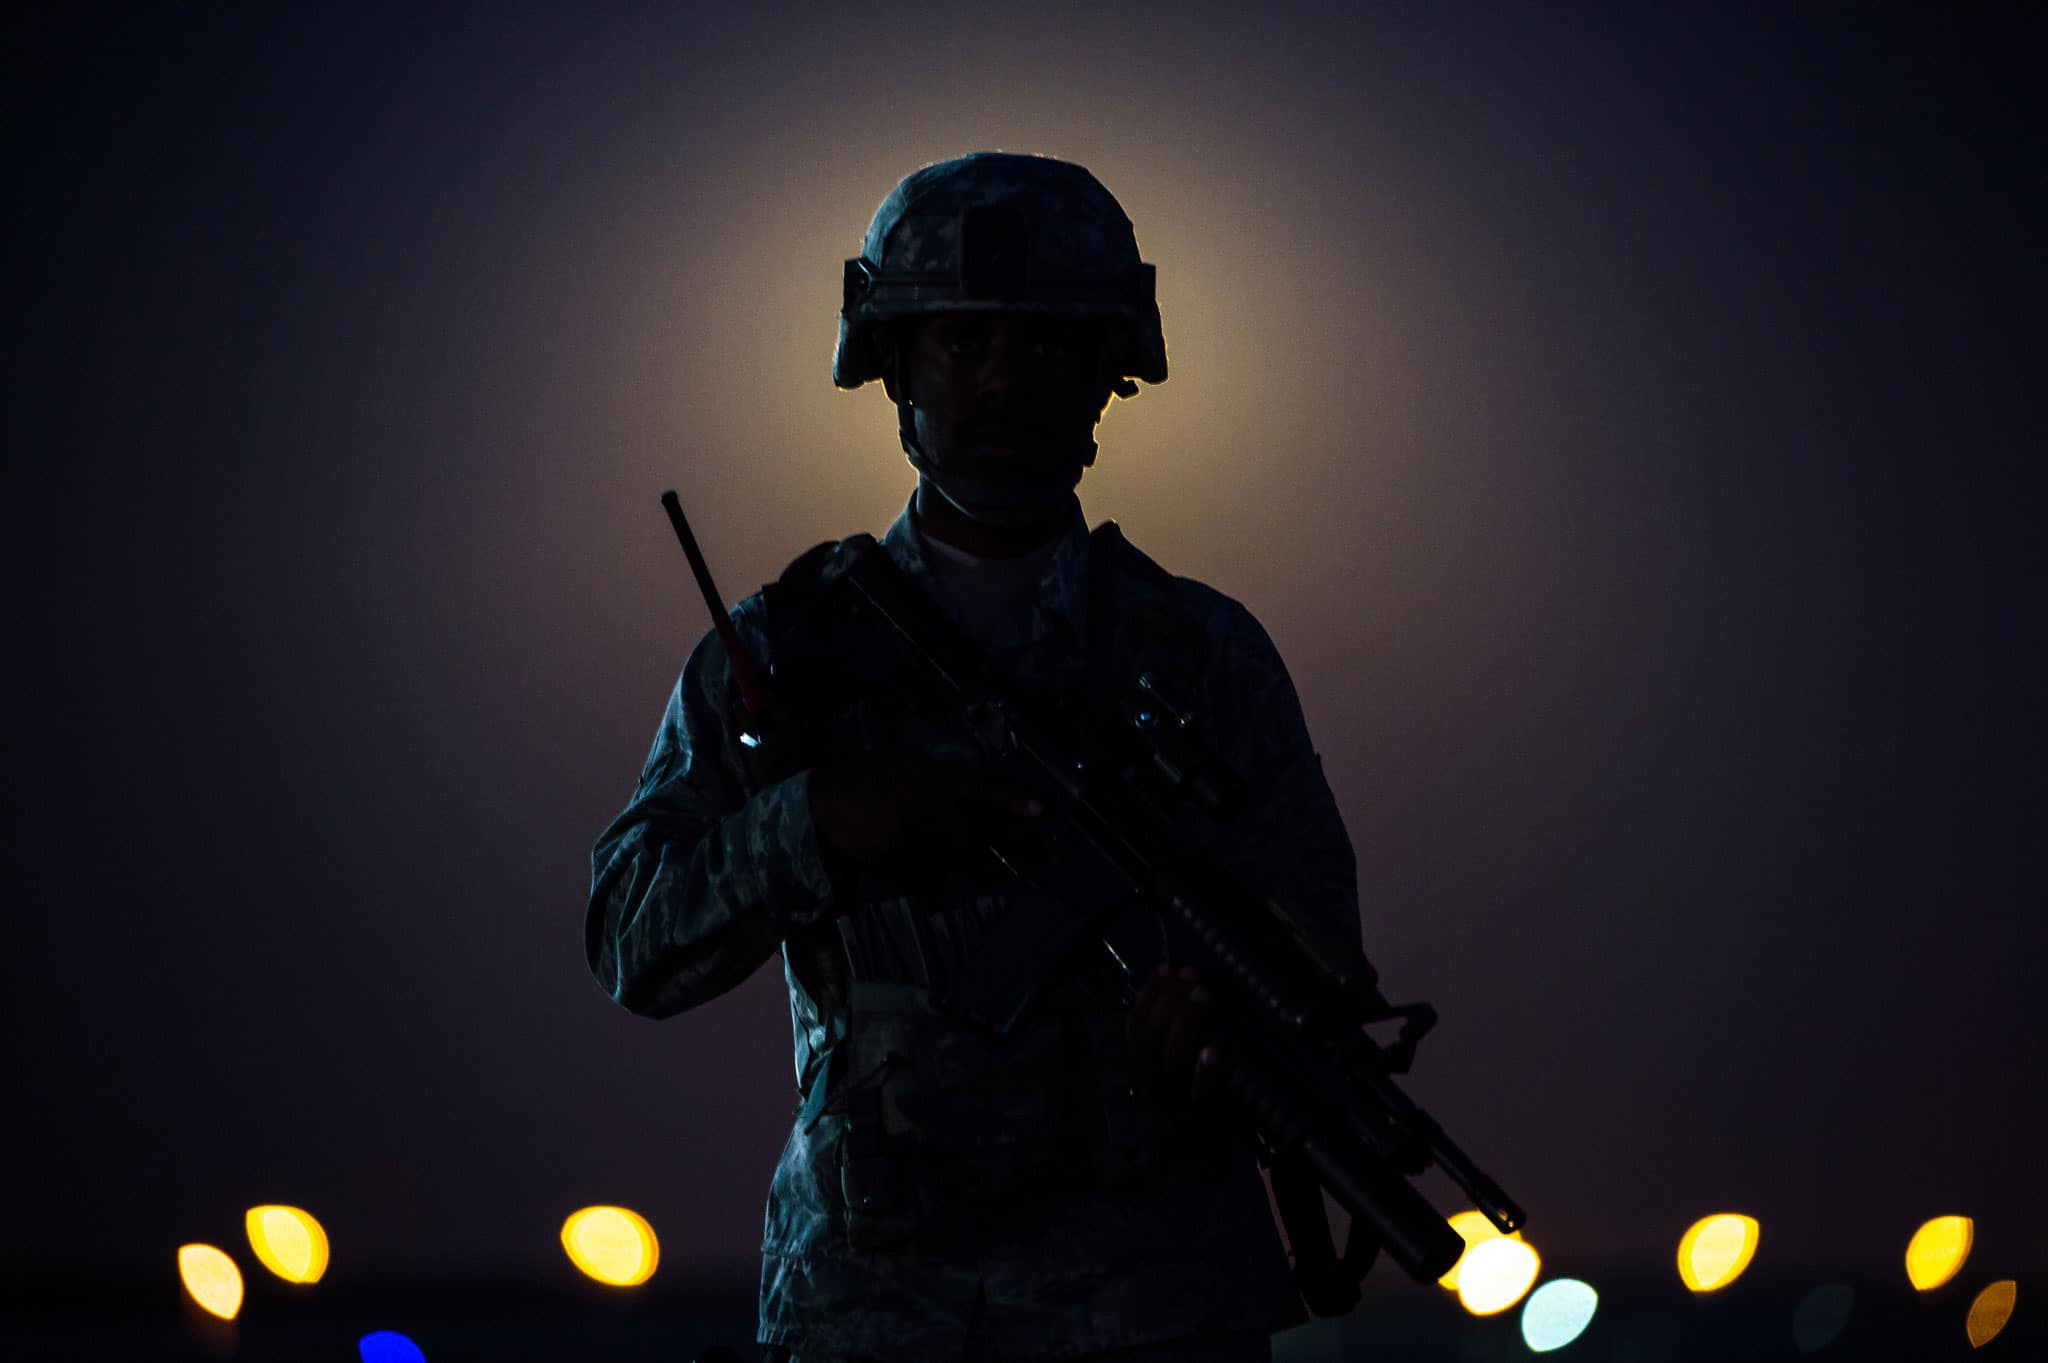 A member of the 380th Air Expeditionary Wing security forces stands on a flight line near a guard tower at an undisclosed location in Southwest Asia, Nov. 14, 2016. Behind the Airman a rare Supermoon rises in the sky. The moon has not been closer to the Earth since Jan. 26, 1948.